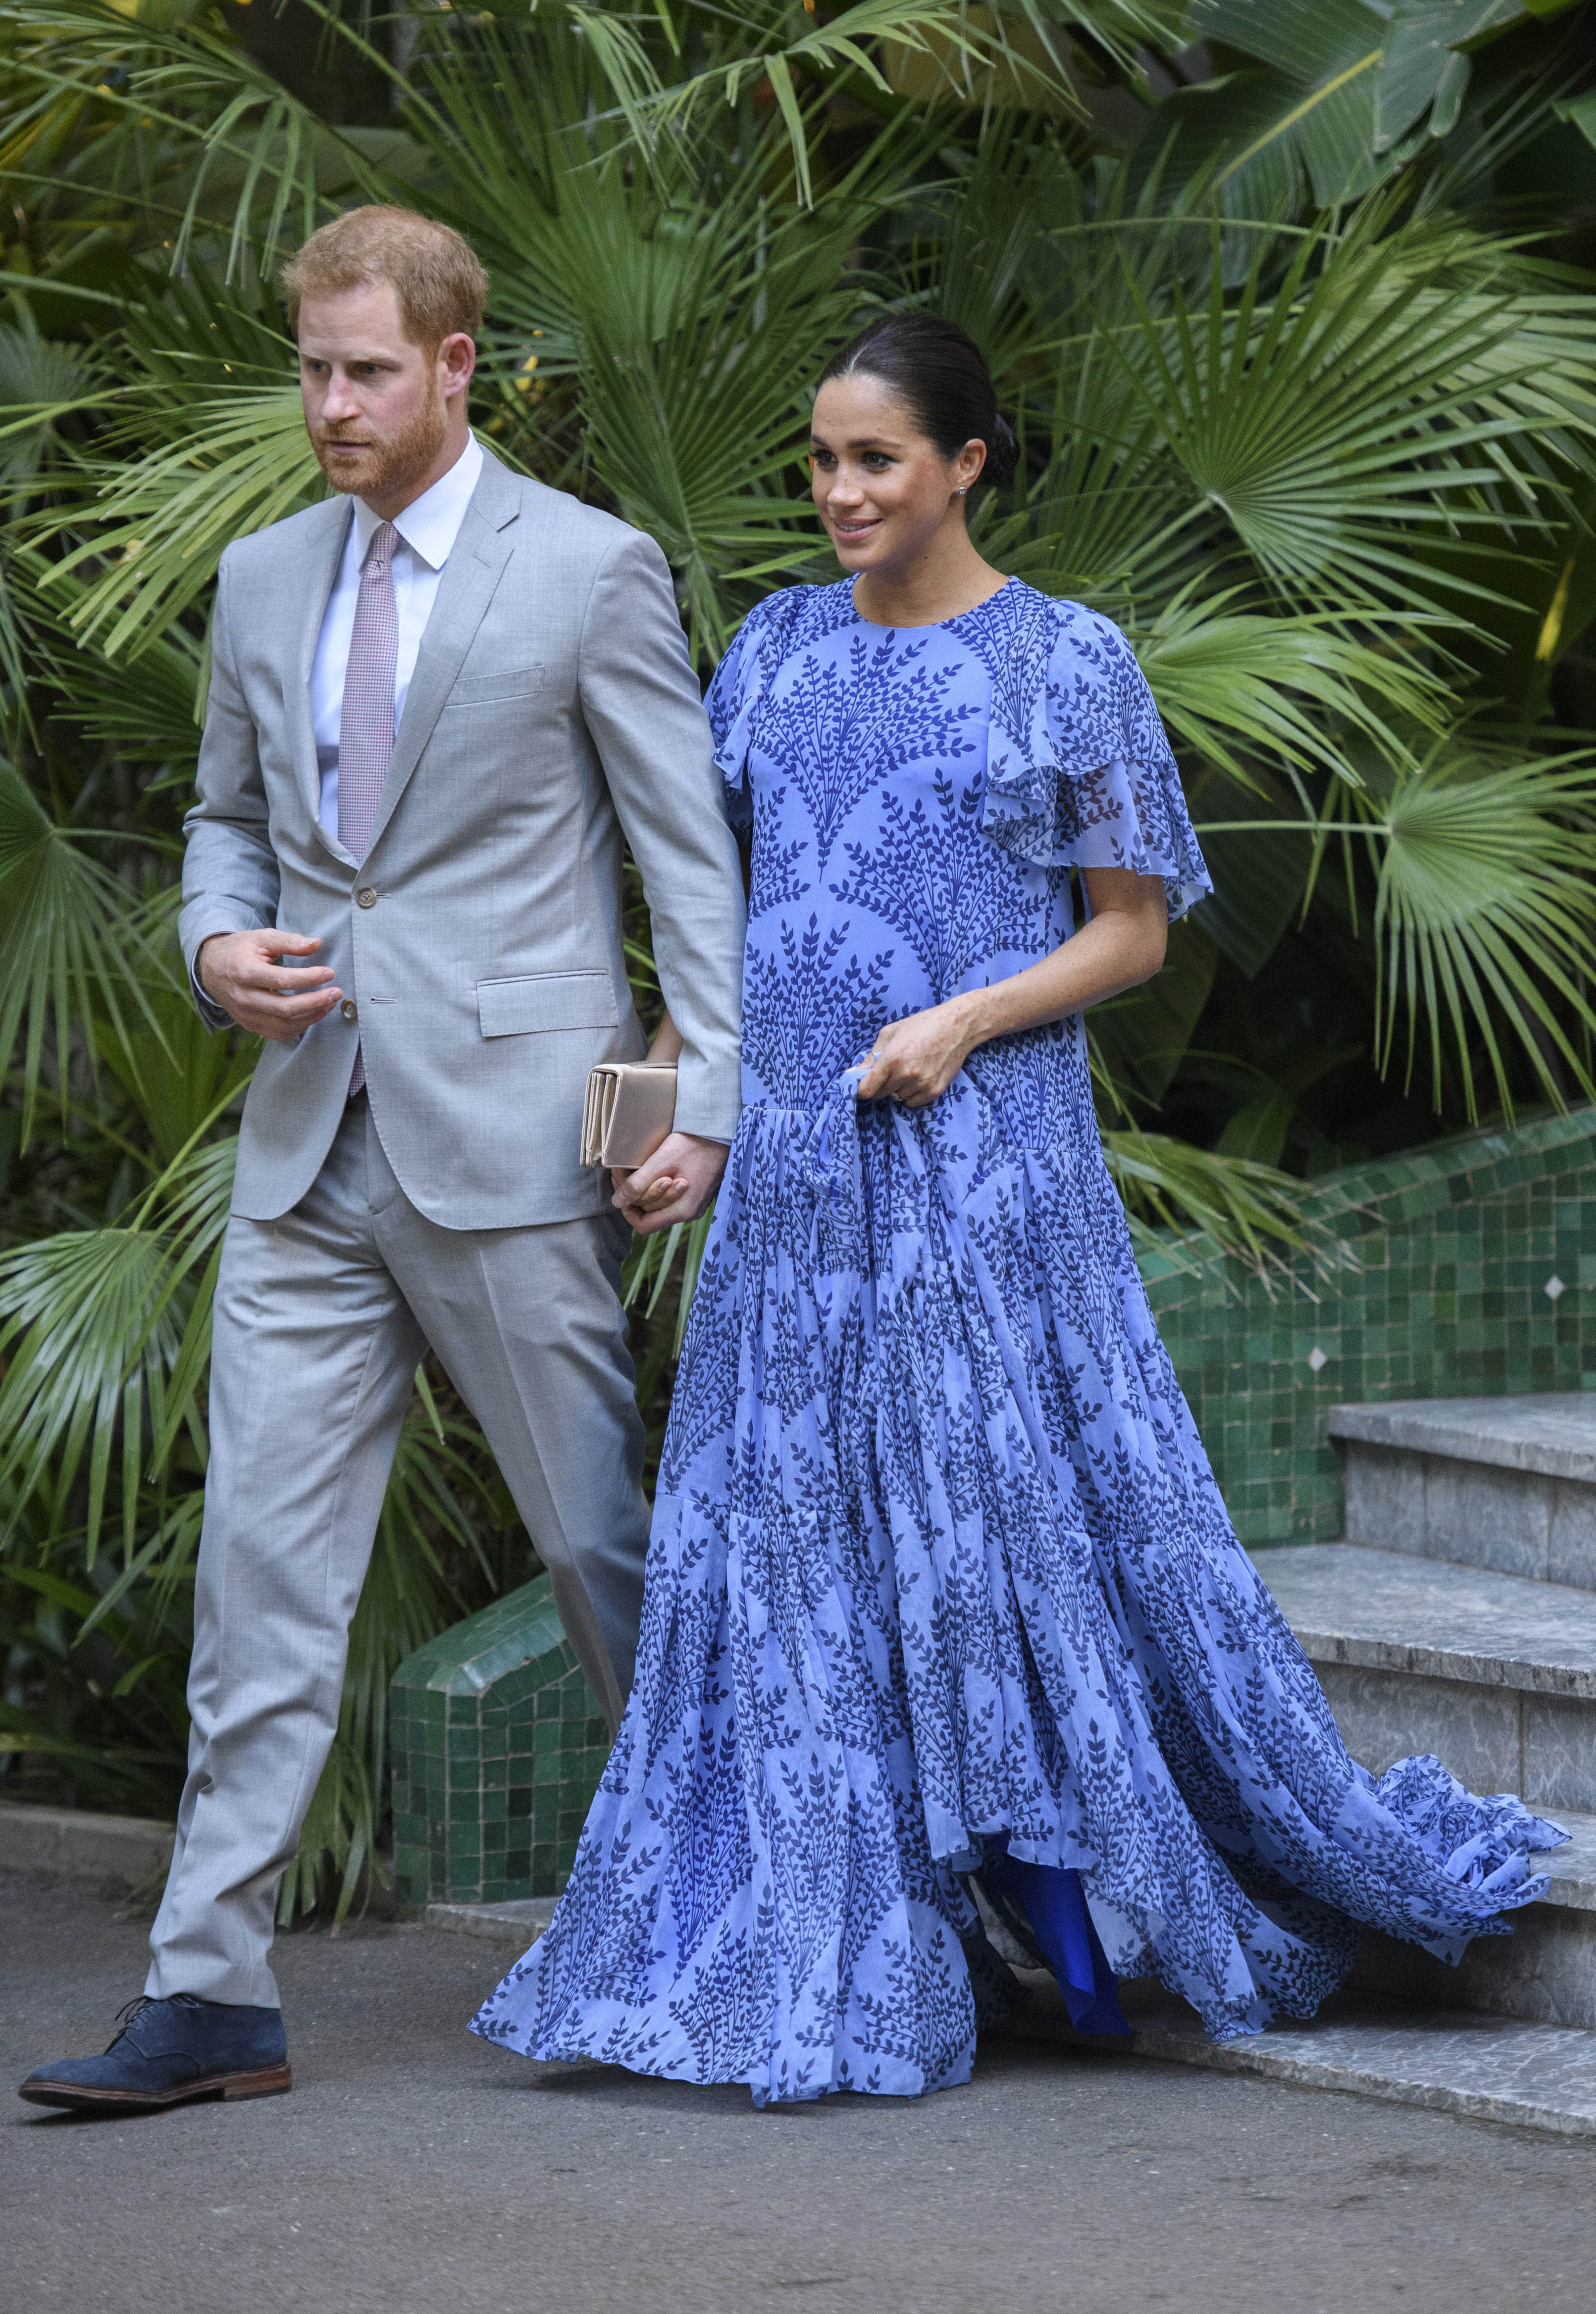 May 19th 2019 - Prince Harry The Duke of Sussex and Duchess Meghan of Sussex celebrate their first wedding anniversary. They were married at St. George's Chapel on the grounds of Windsor Castle on May 19th 2018. - File Photo by: zz/KGC-178/STAR MAX/IPx 2019 2/25/19 Prince Harry, Duke of Sussex and Meghan, Duchess of Sussex are received by HM The King of Morocco in an Audience today at the Royal Palace, Rabat, Morocco.